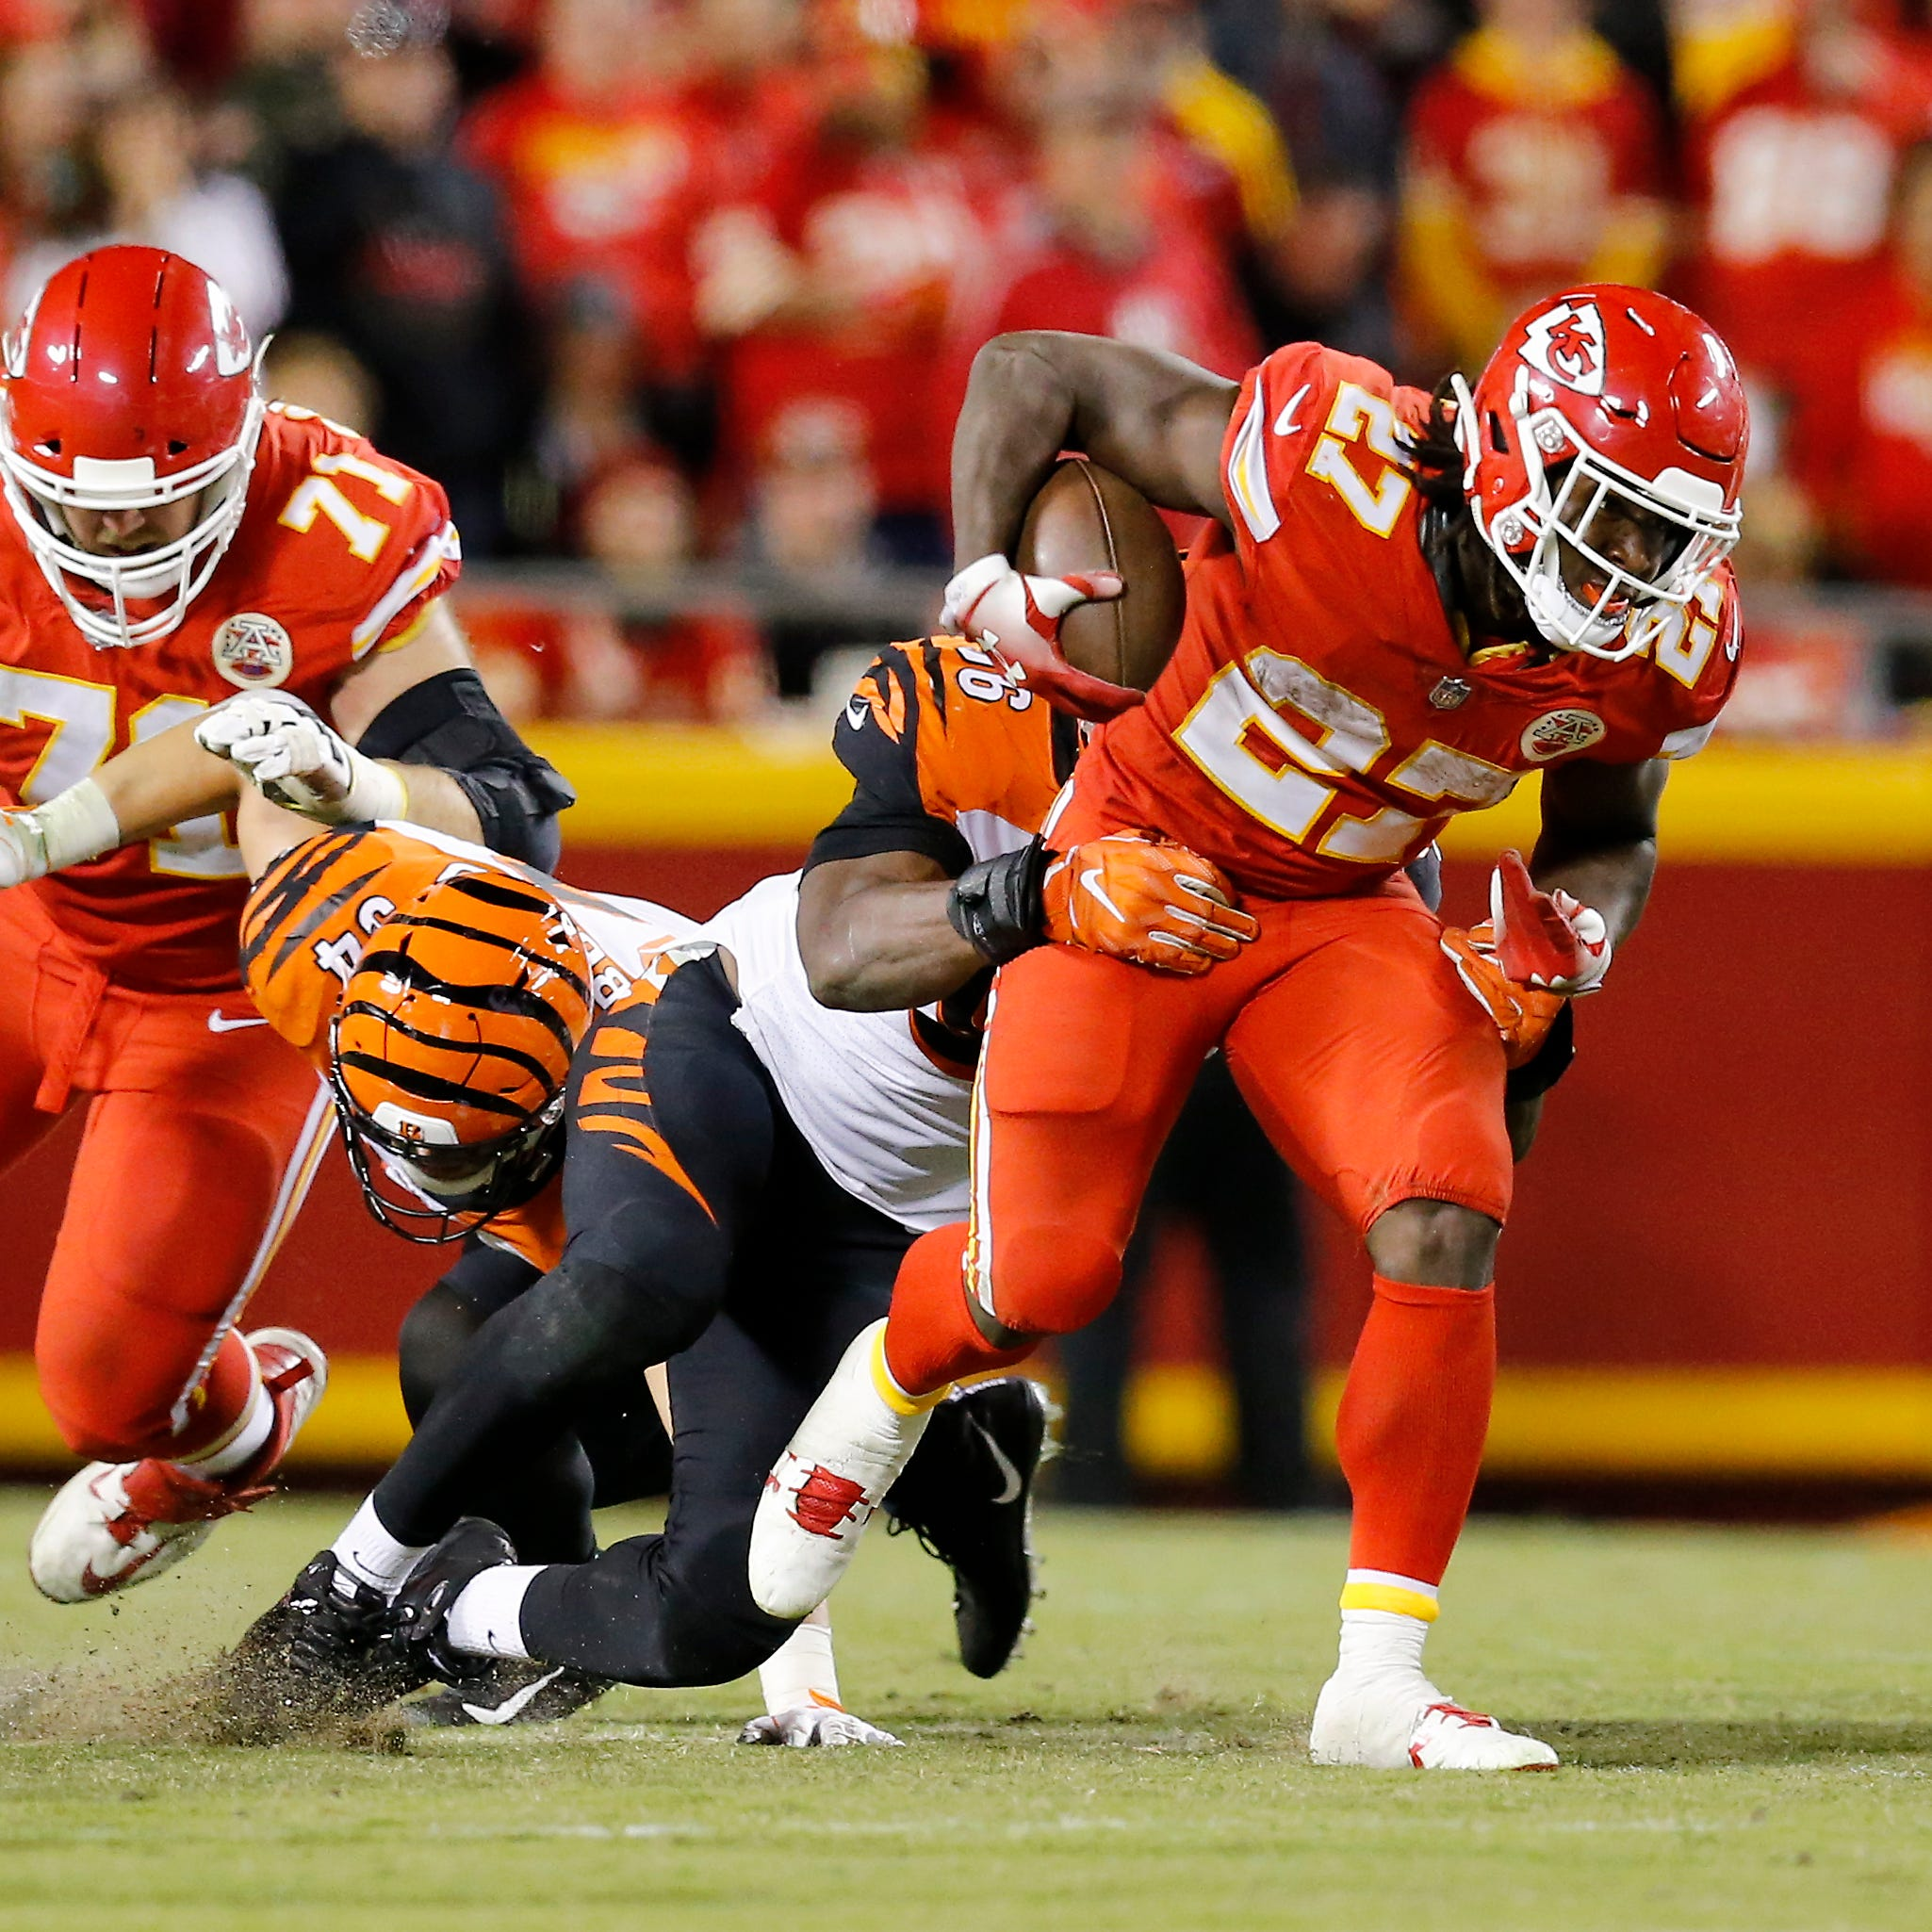 Cincinnati Bengals: How bad is the Bengals' tackling issue? Worse than we thought